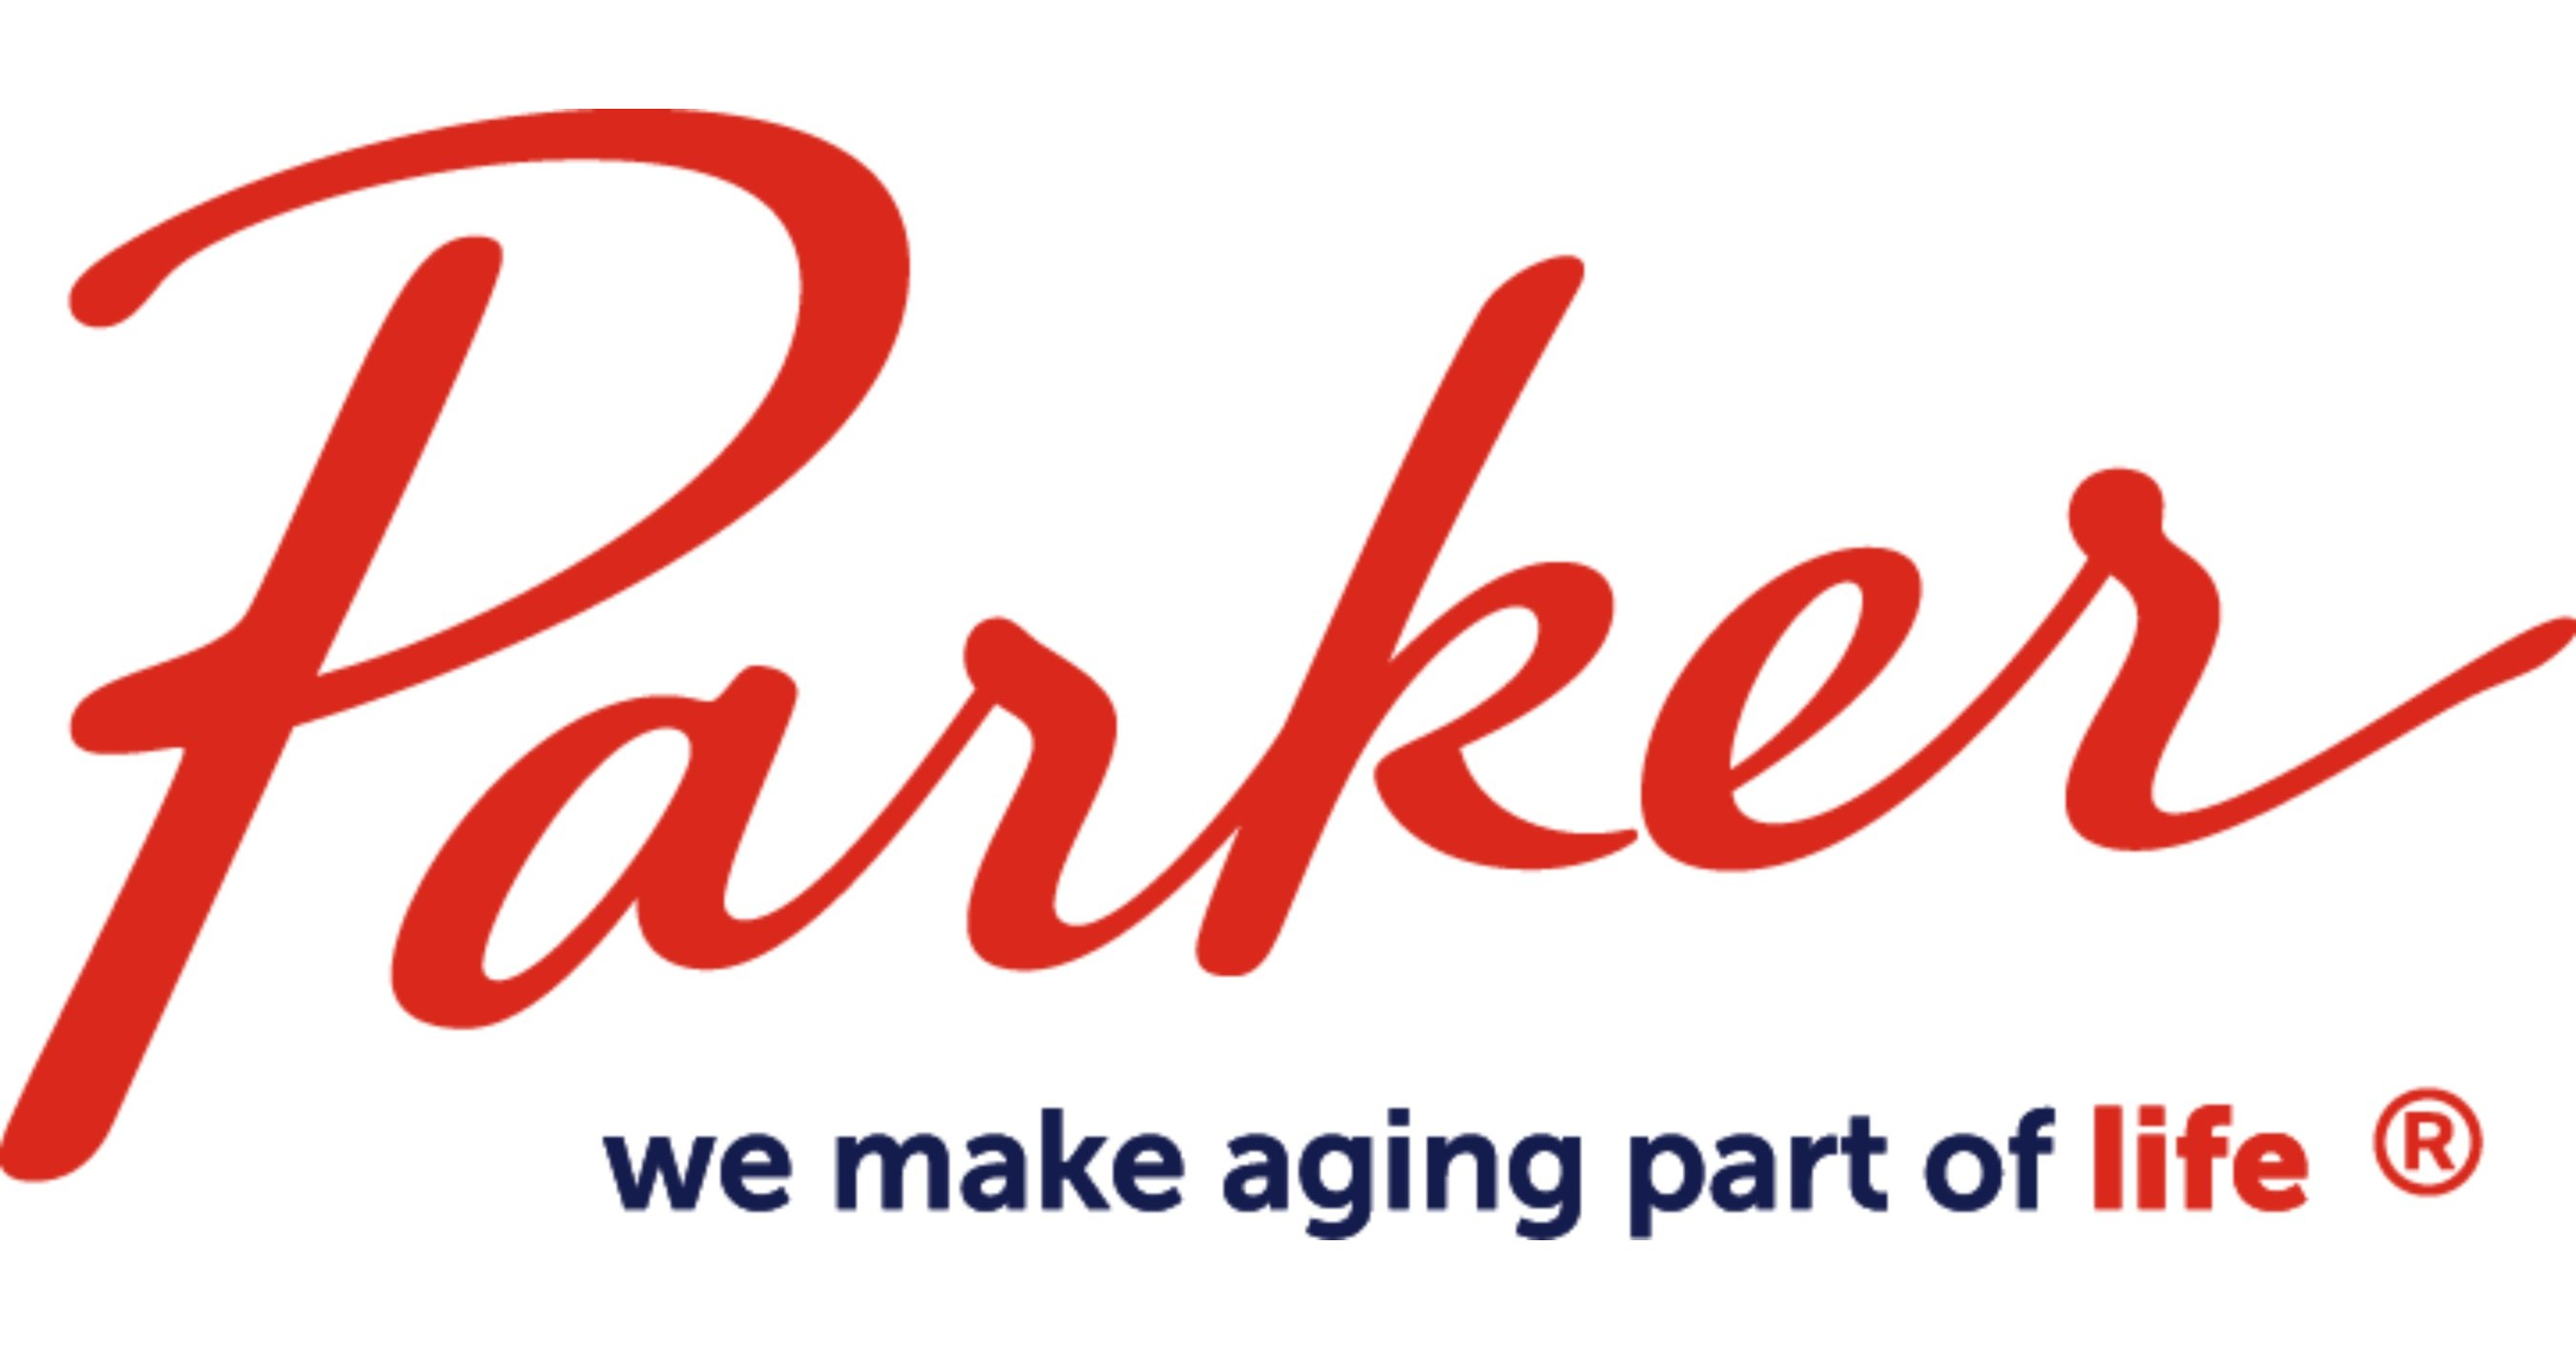 Parker Awards a $2.5M Grant to VNA Health Group